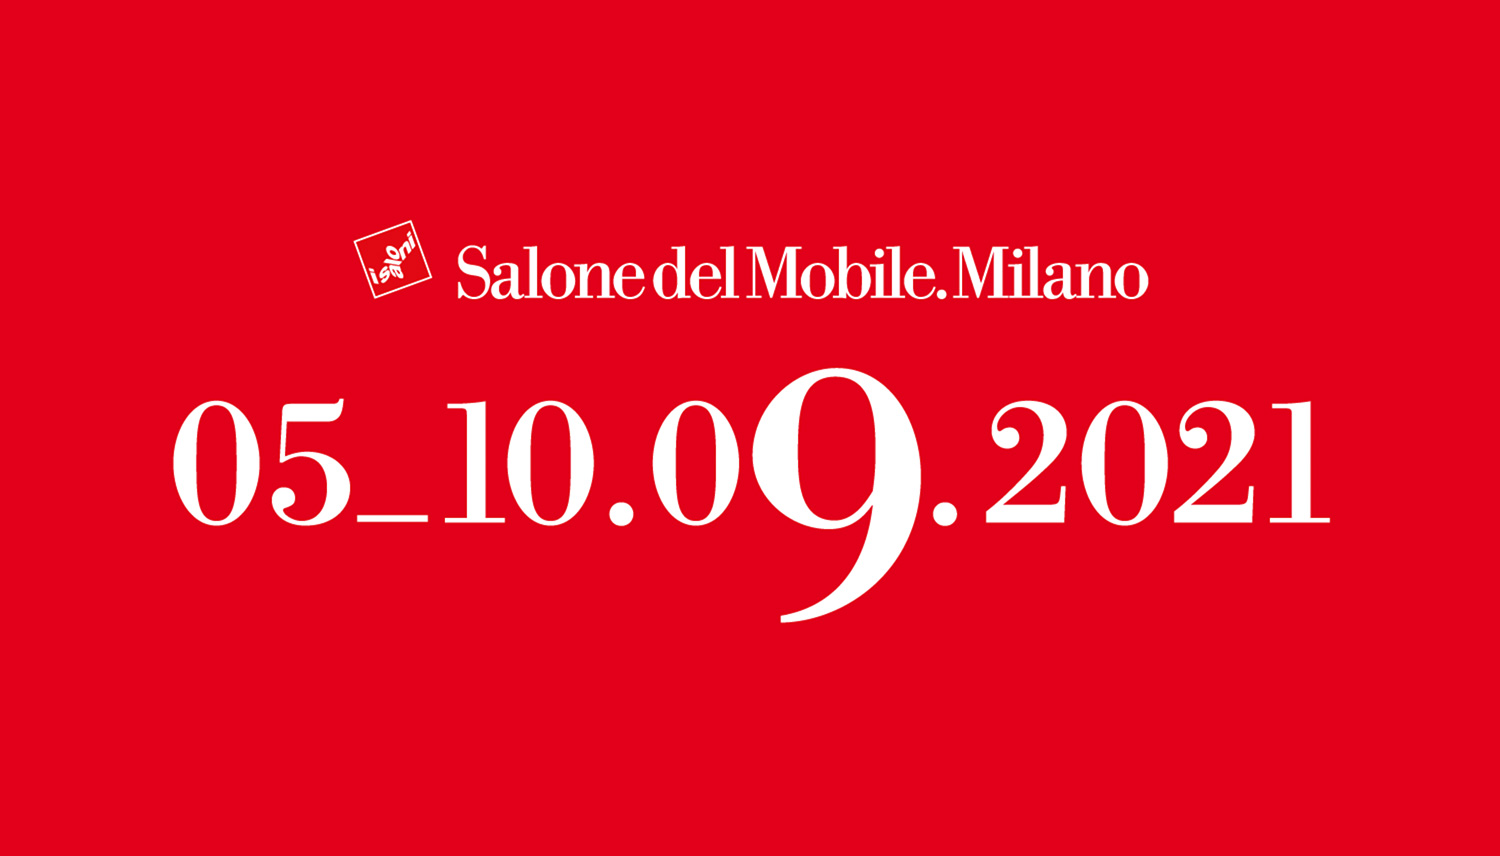 Salone del Mobile Milano 2021 will be held in September